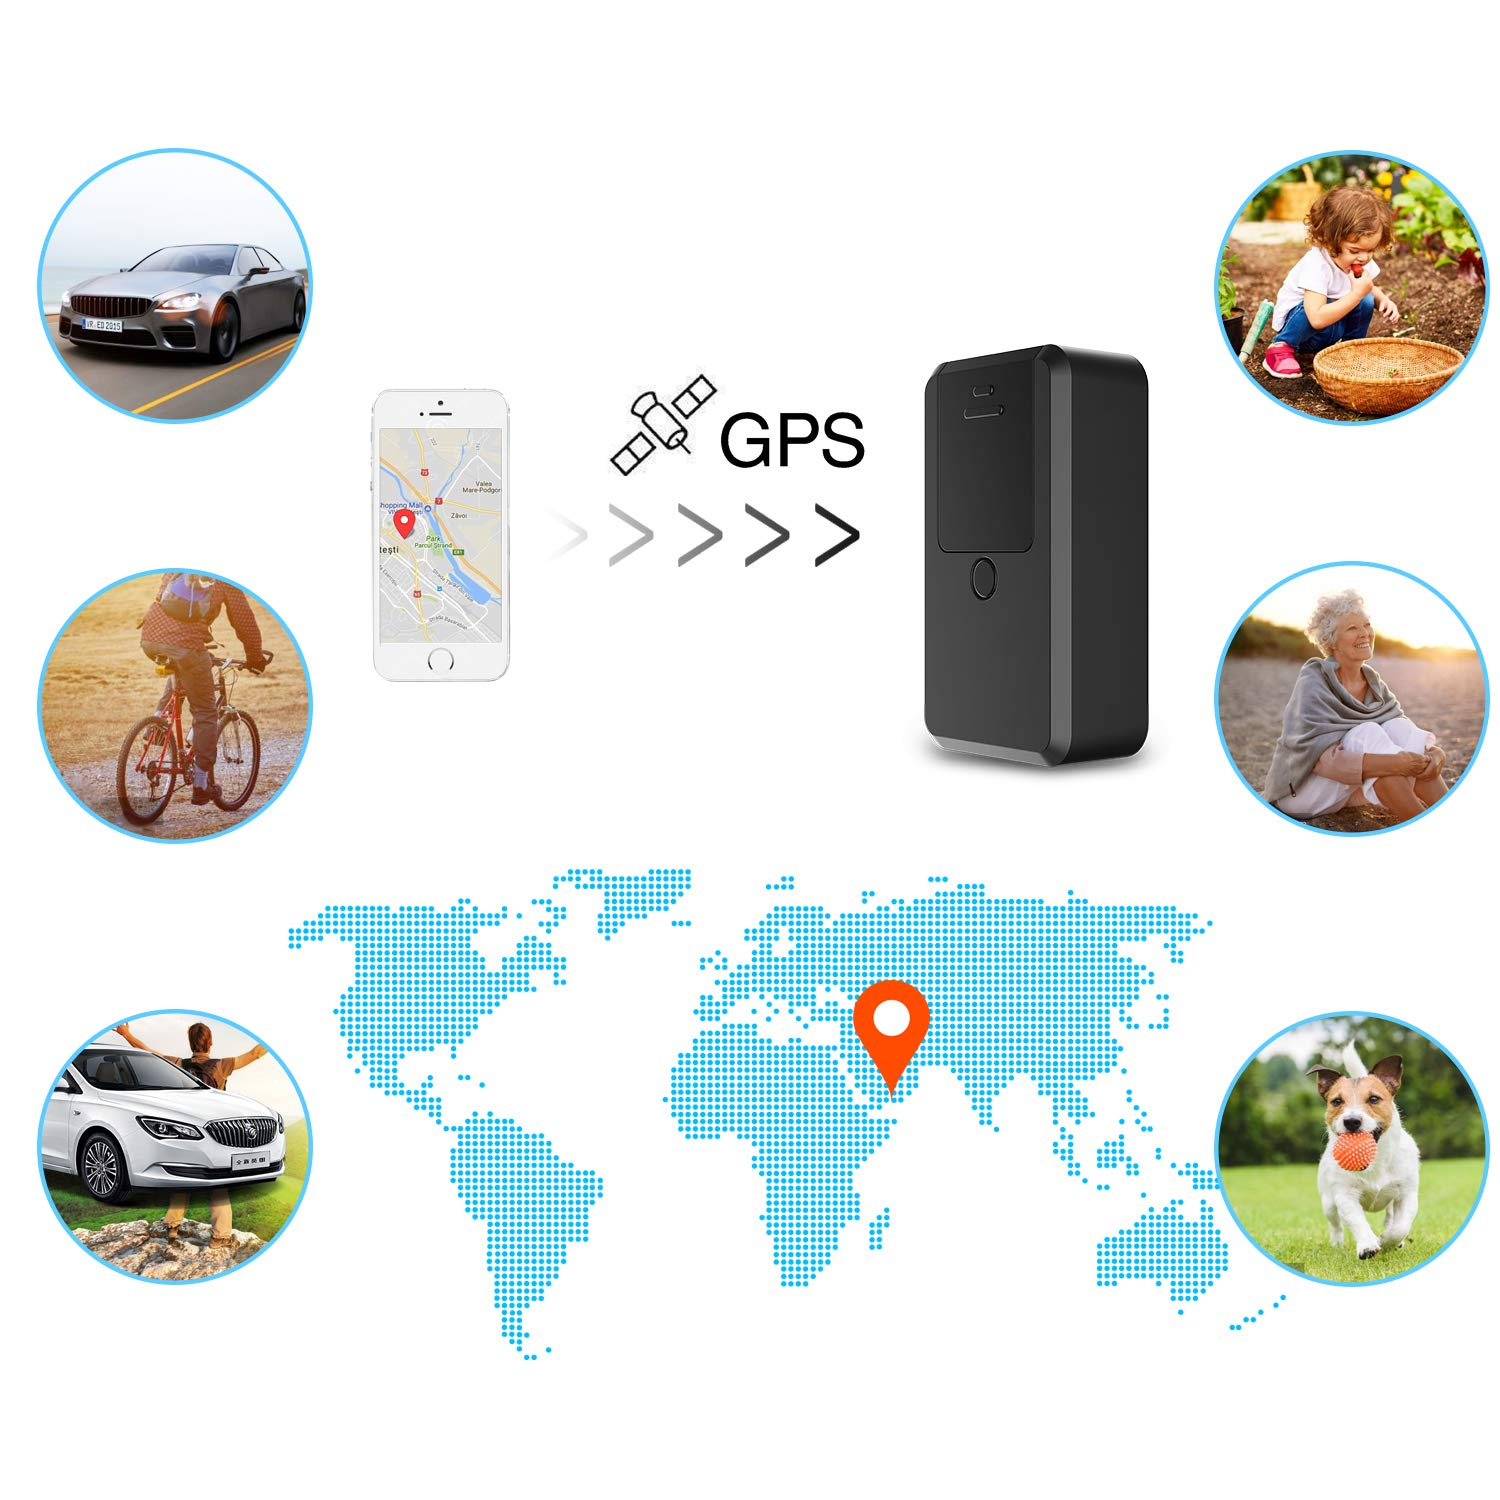 Mini GPS Tracker,Kimfly GPS Tracker Anti-thief GPS Tracking Device SMS Locator Global Real Time tracking for Car/Vehicle/Motorcycle/Bycicle/Kids/Wallet/Documents/Bags with App for iOS and Android